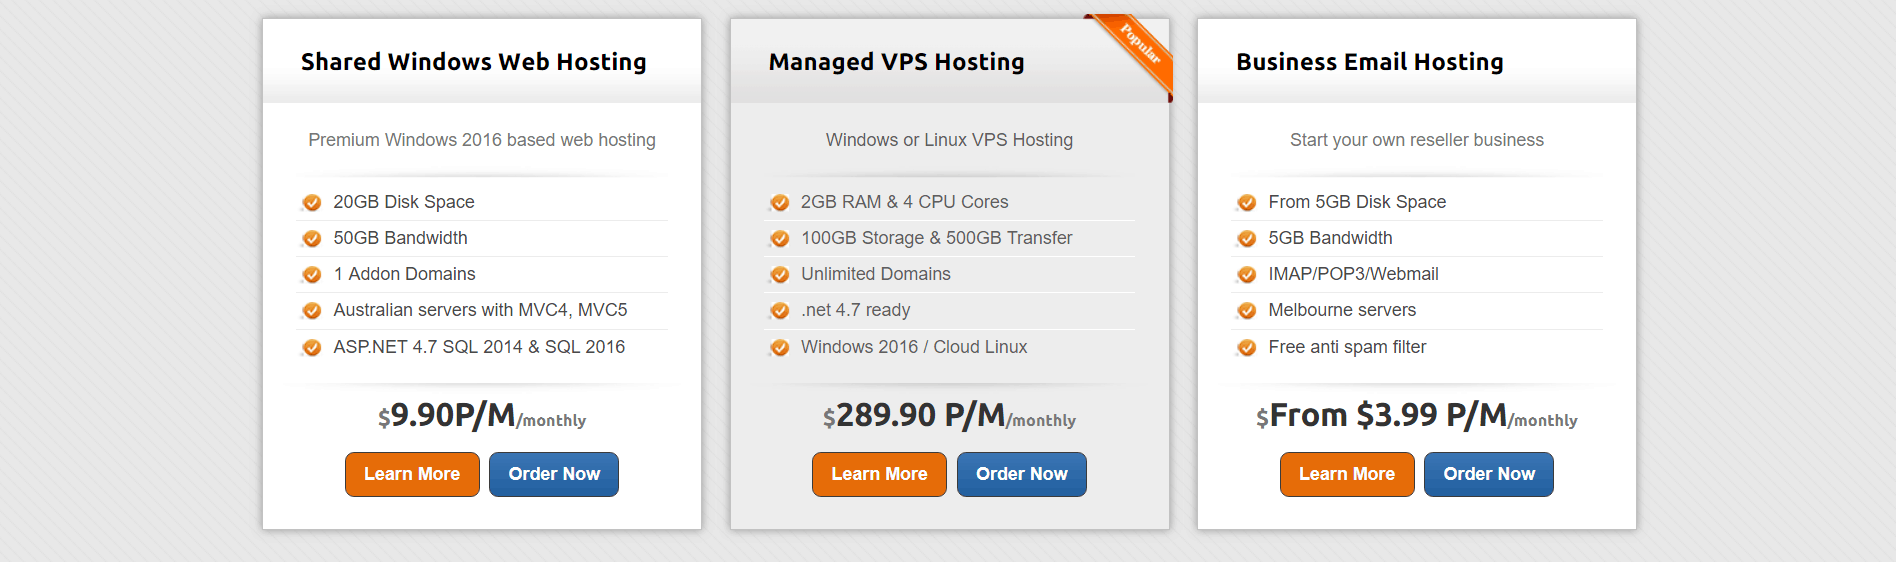 Apexhost-features